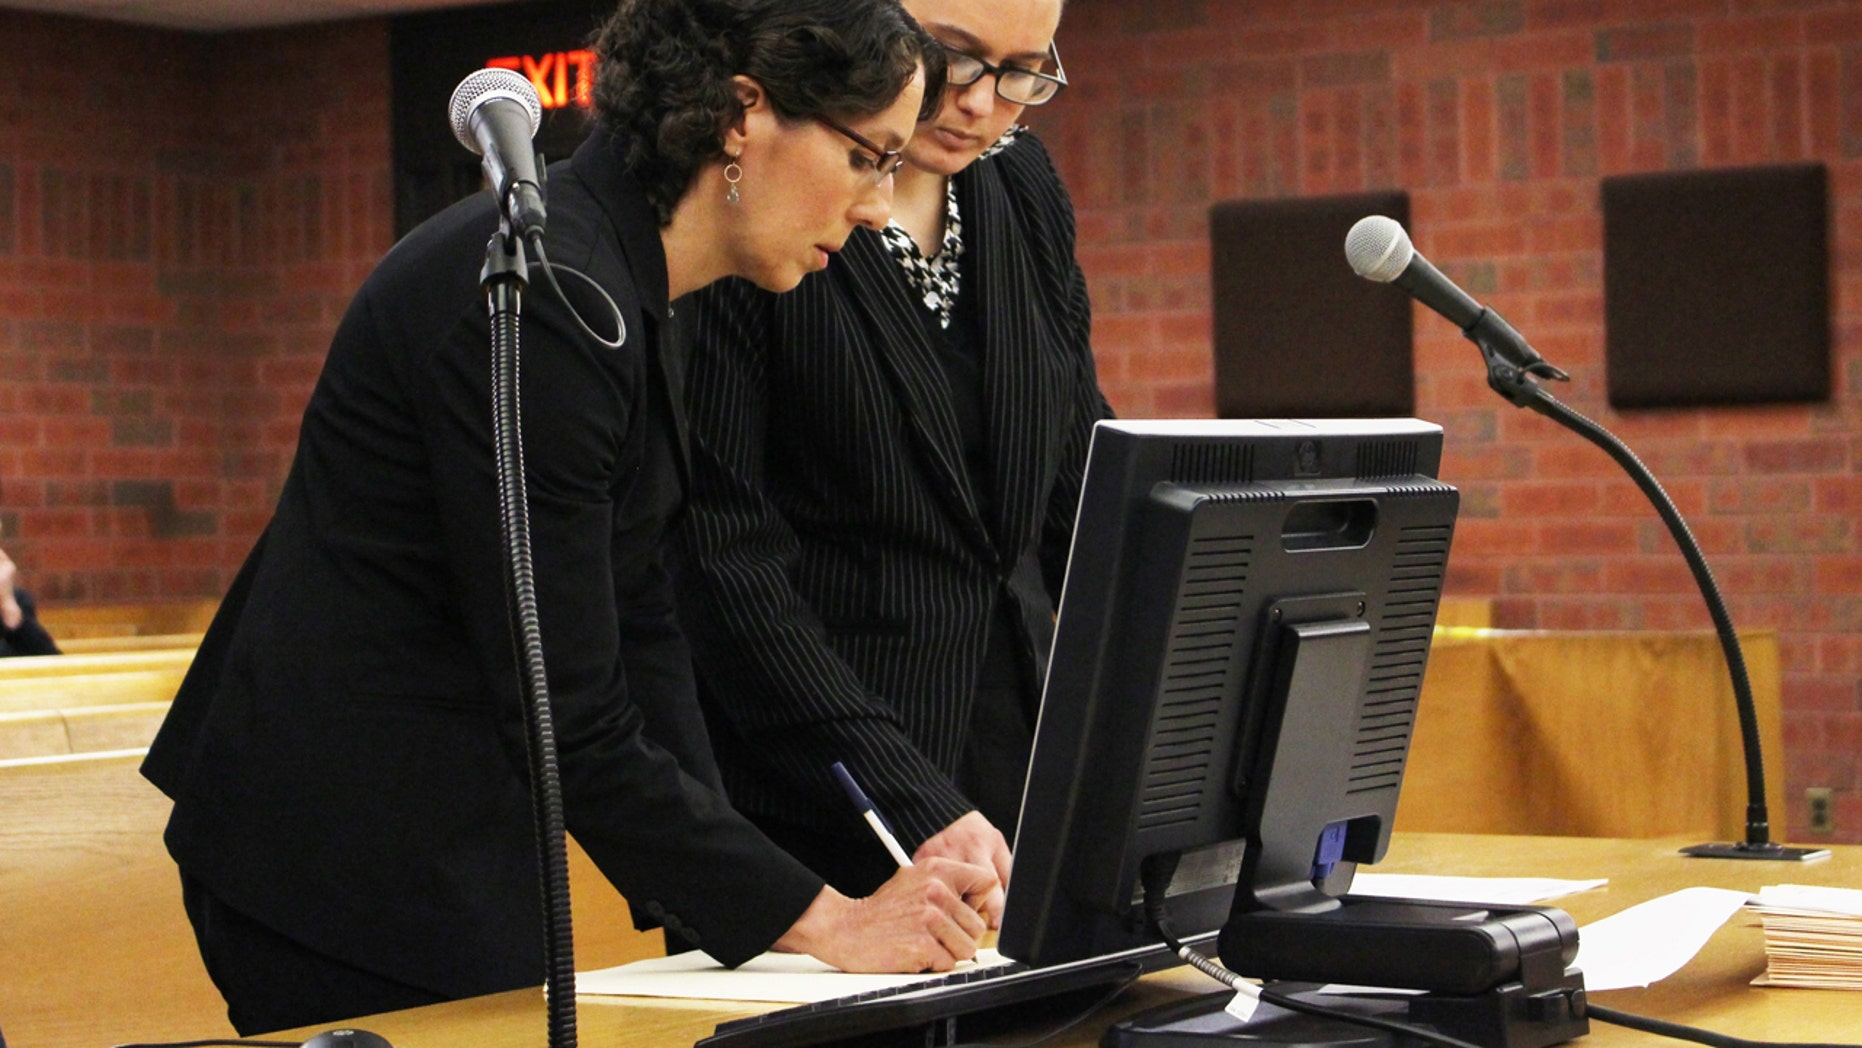 University of Connecticut law professor Jessica Rubin, left, and law student Taylor Hansen prepare to present arguments as animal advocates in a dog fighting case on May 30, 2017, in Superior Court in Hartford, Conn.